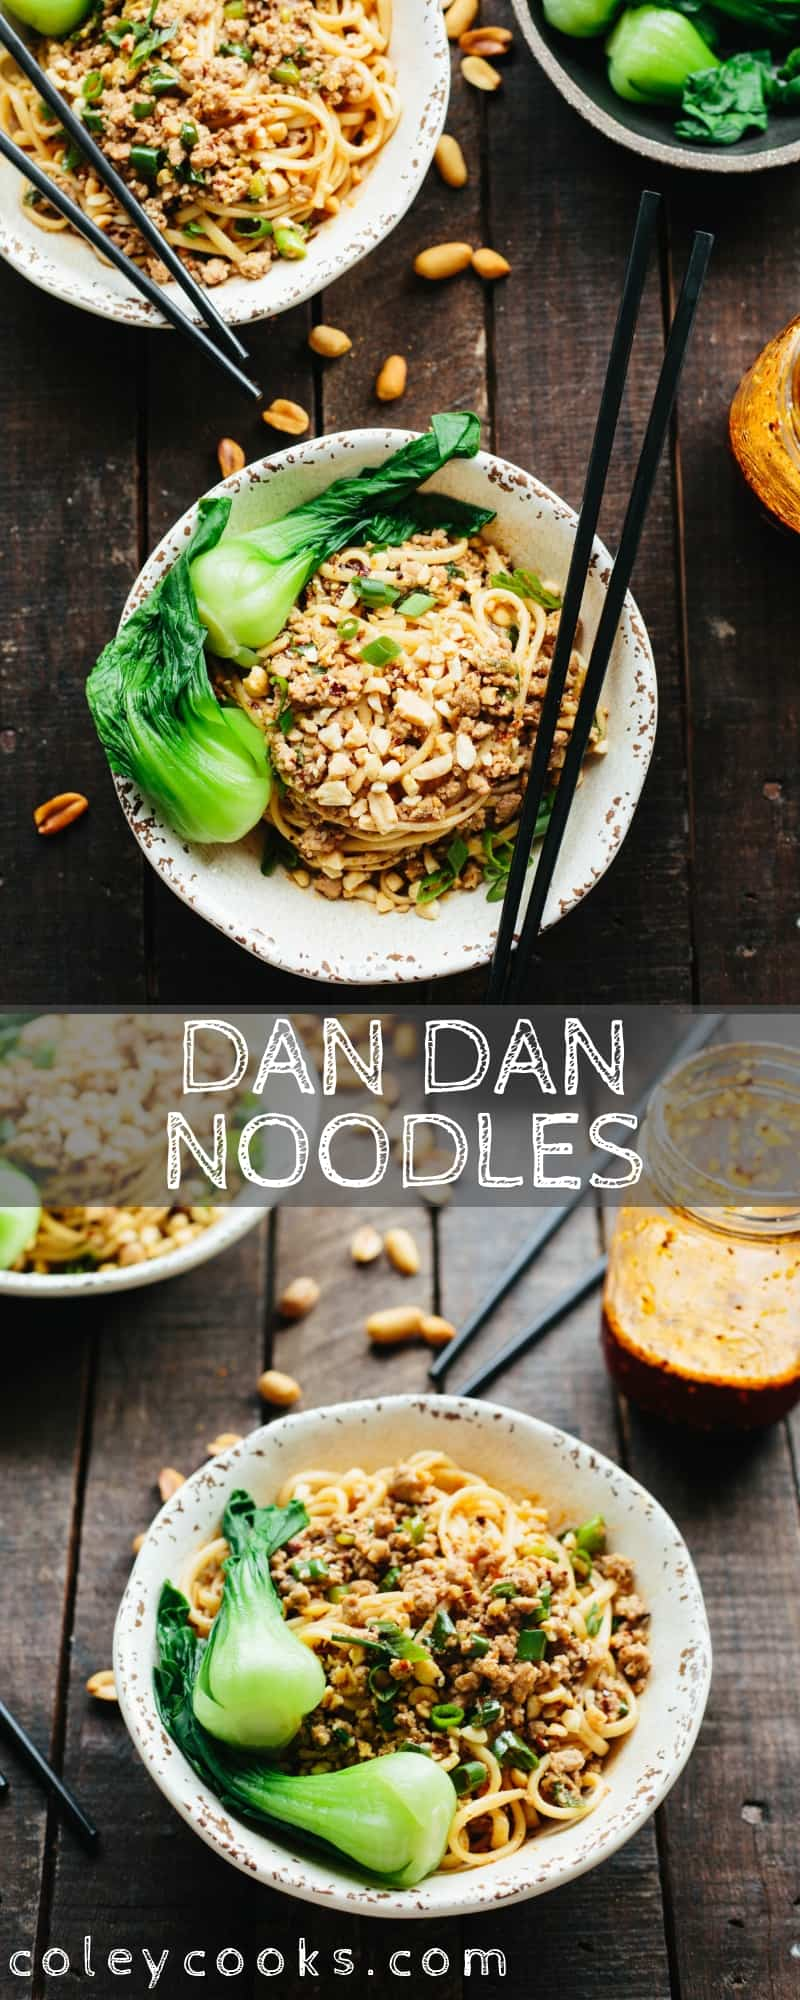 Dan Dan Noodles are a classic Sichuan street food made with ground pork and spicy chili oil. These noodles have the perfect balance of flavors and textures! #dandan #noodles #Chinese #sichuan #easy #recipe #spicy #pork | coleycooks.com